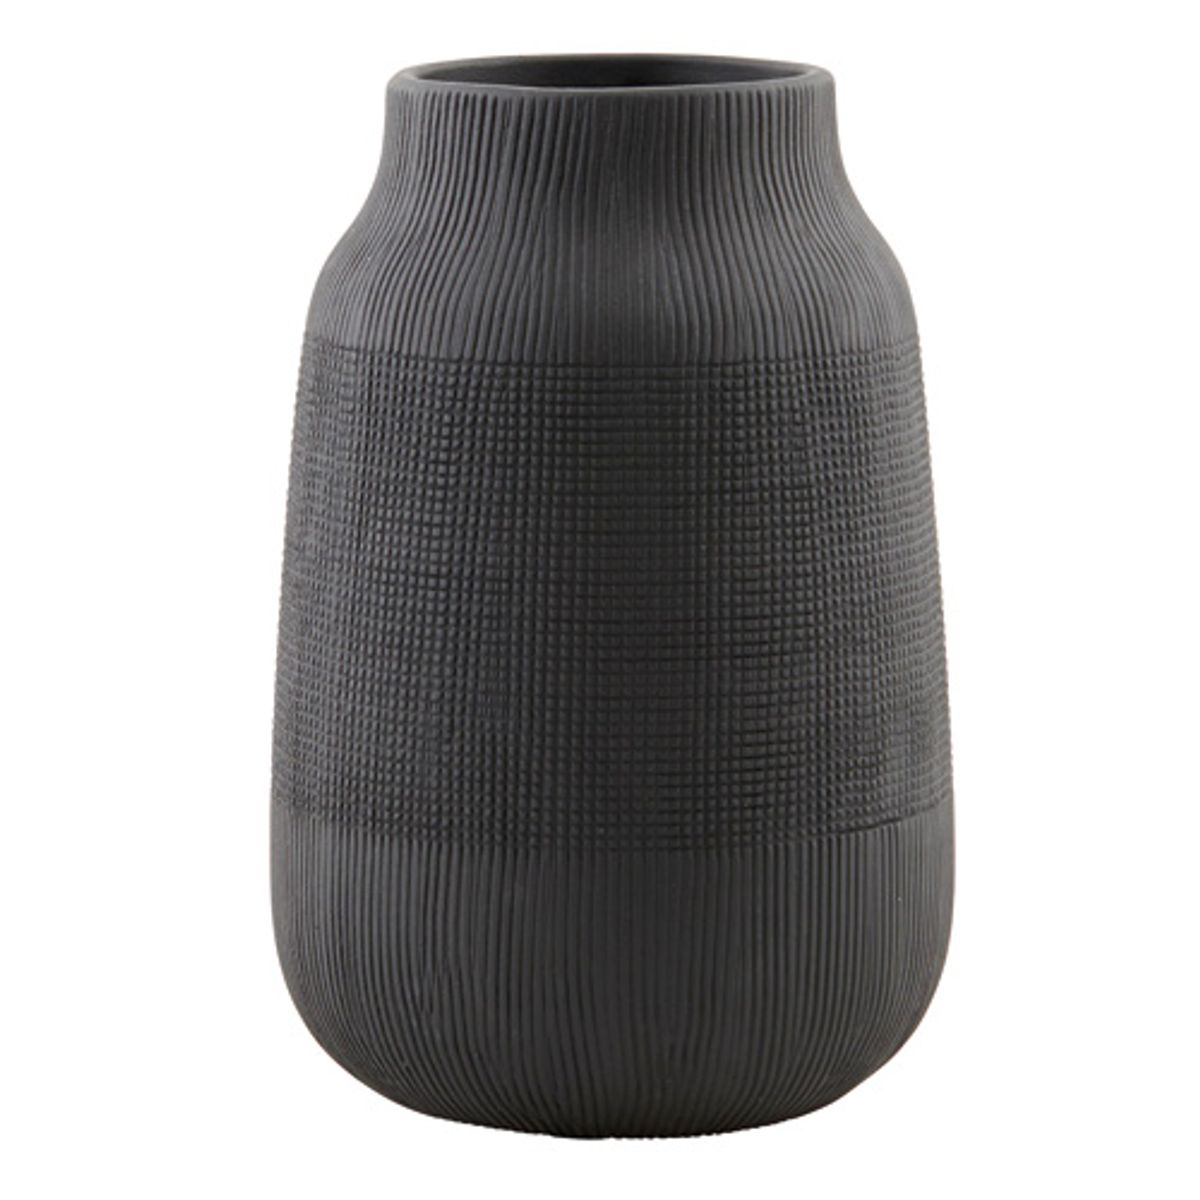 Vase strié en argile couleur noir mat House Doctor - PM